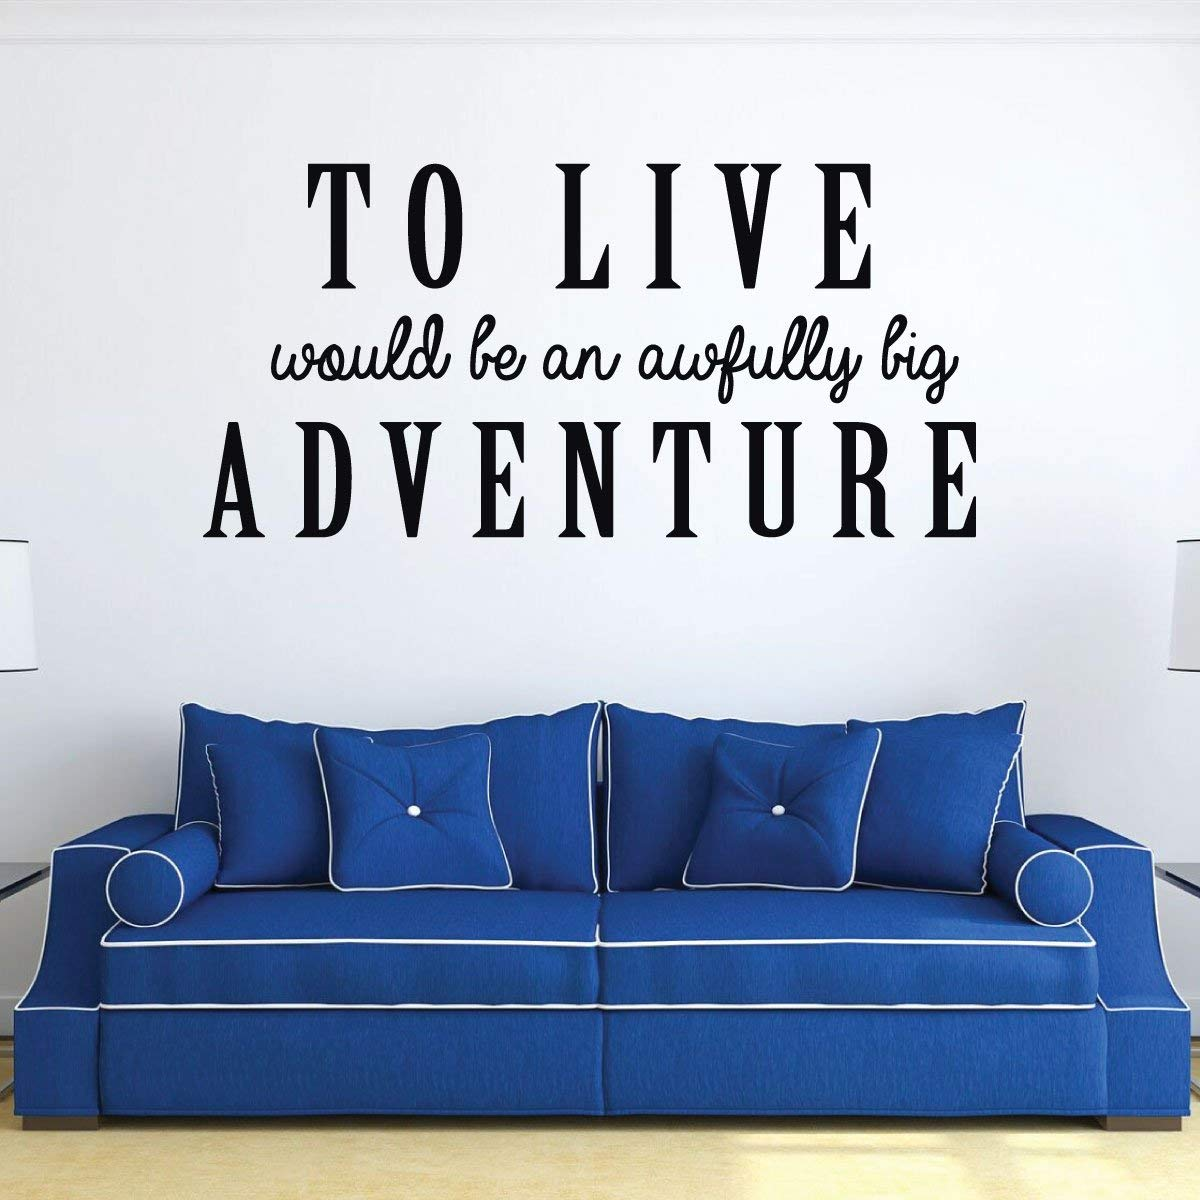 Amazon Com Quote Wall Decals Vinyl Wall Art Decor For The Living Room Teenage Bedroom Ideas Home Movie Theater Decor Handmade